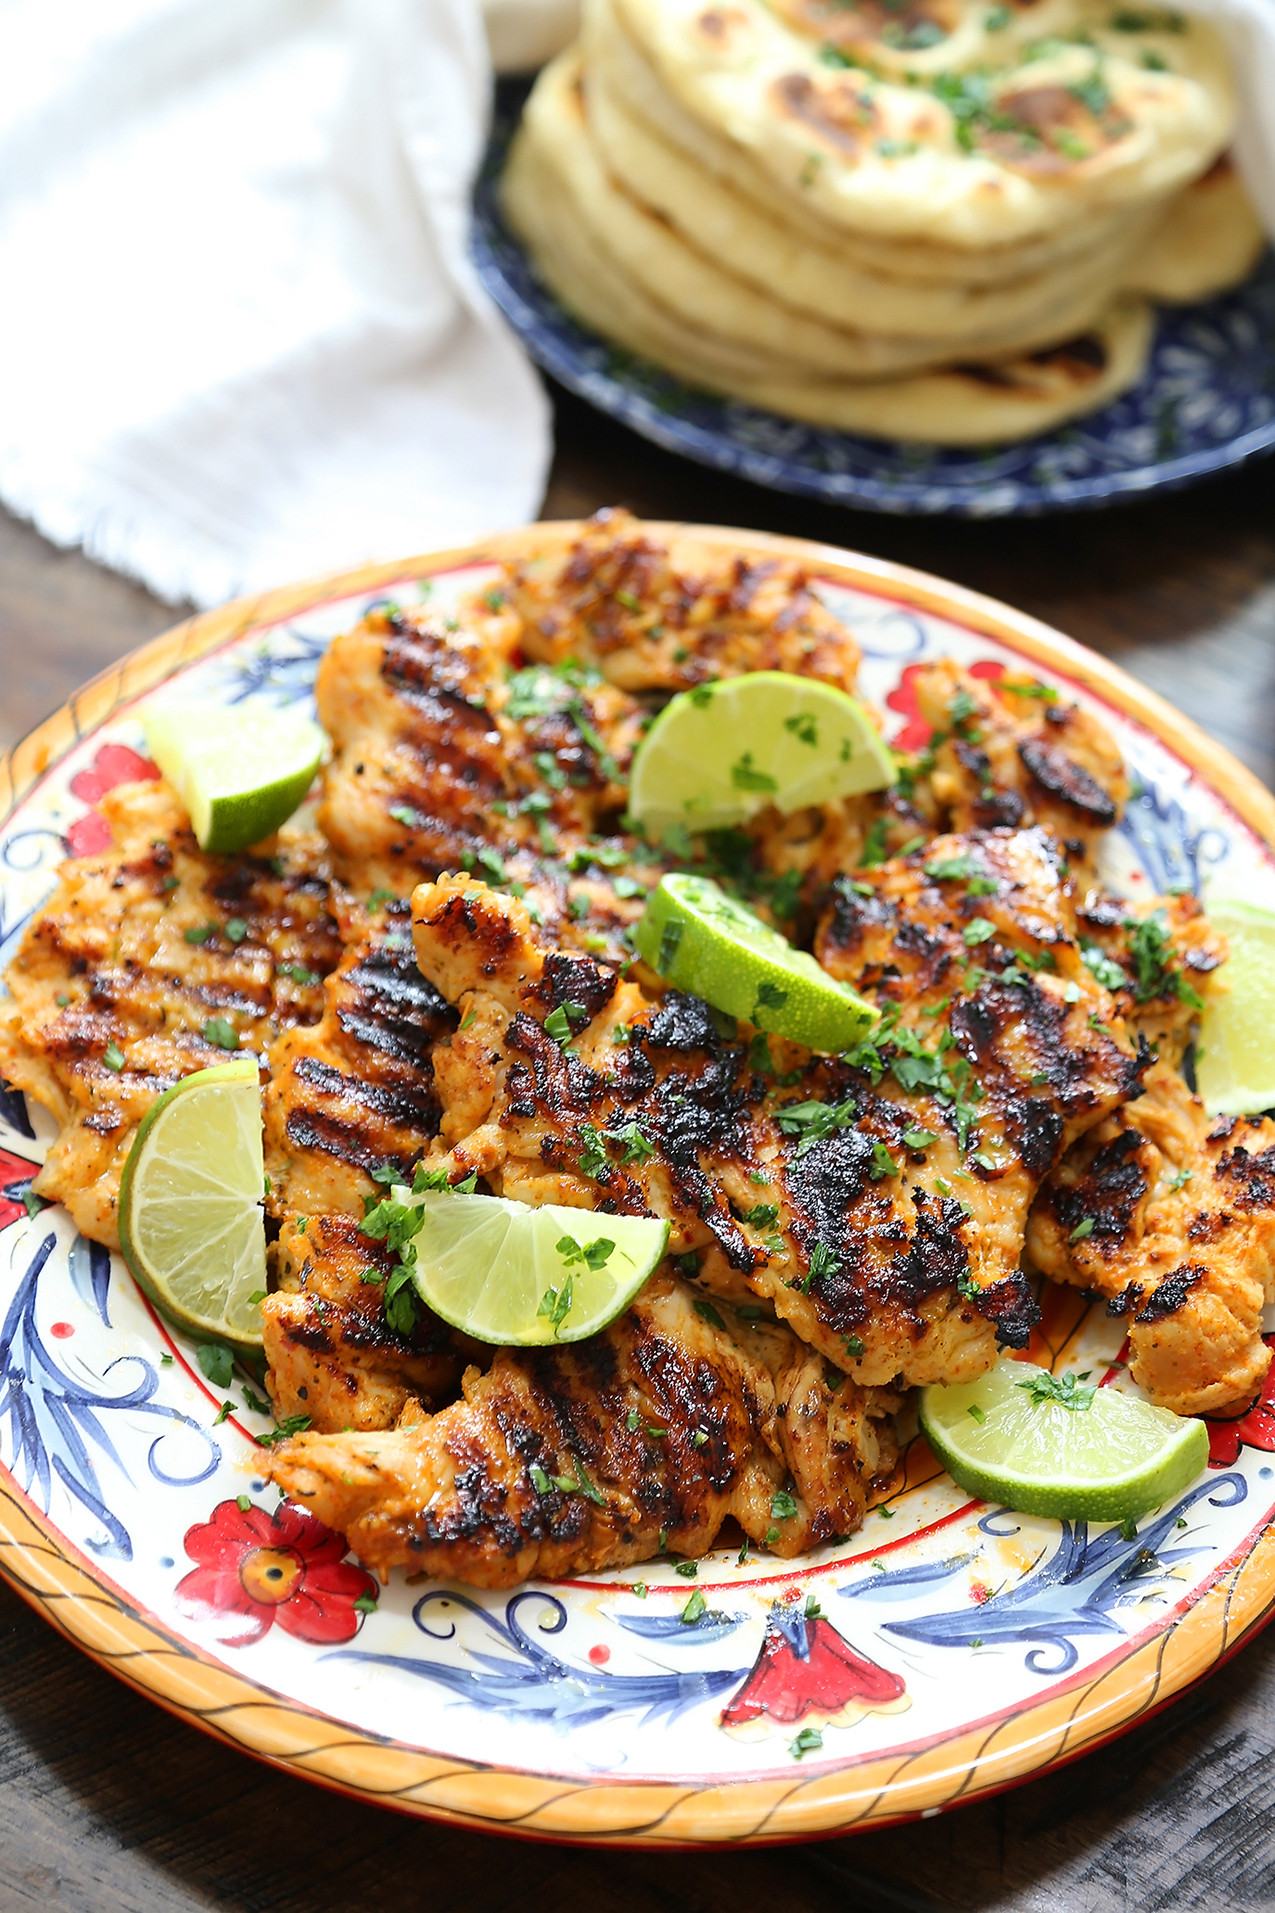 Chili Lime Chicken Recipe  Chili Lime Grilled Chicken with Cucumber Mint Sauce